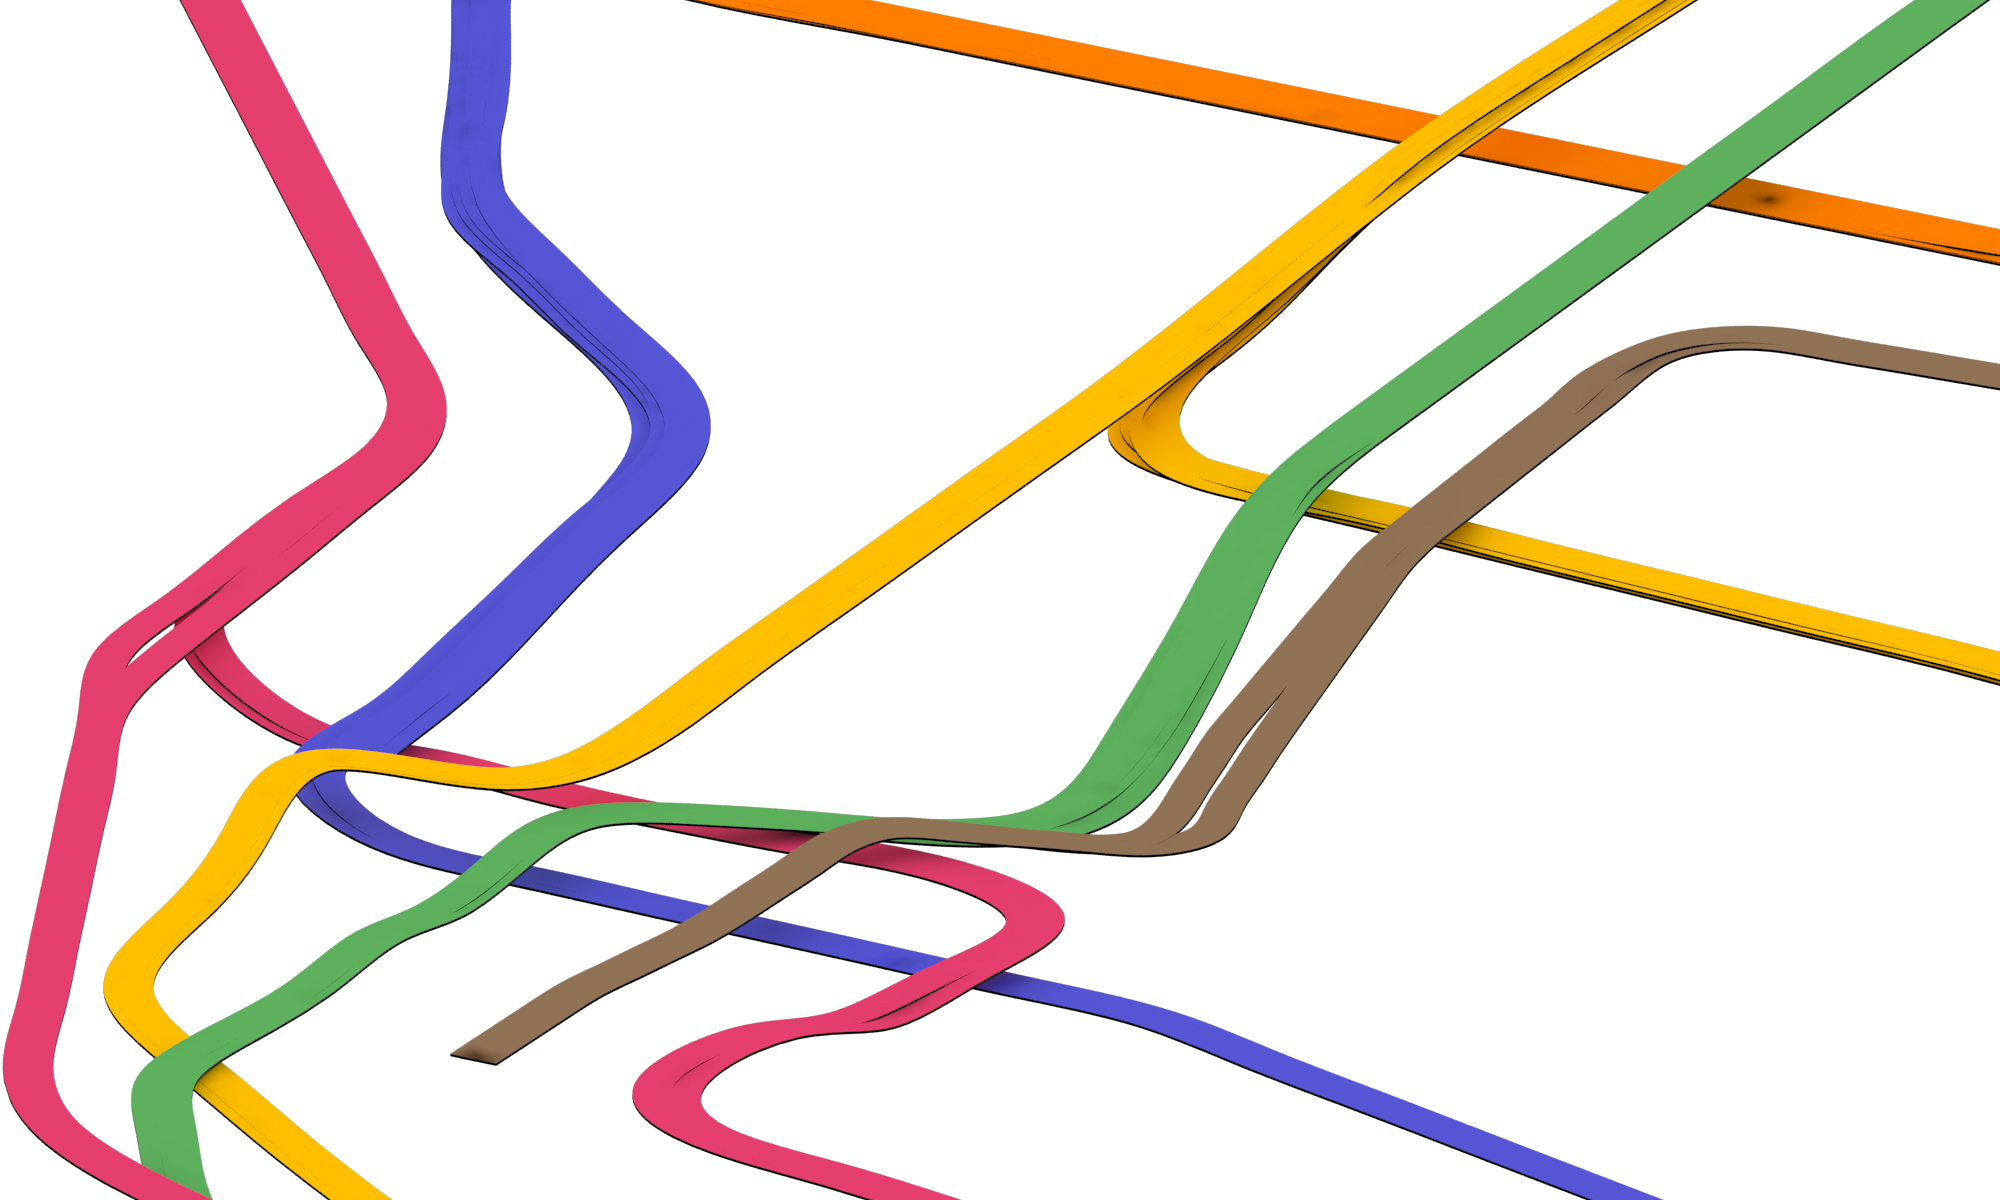 NYC Subway 3D Track Map - Downtown